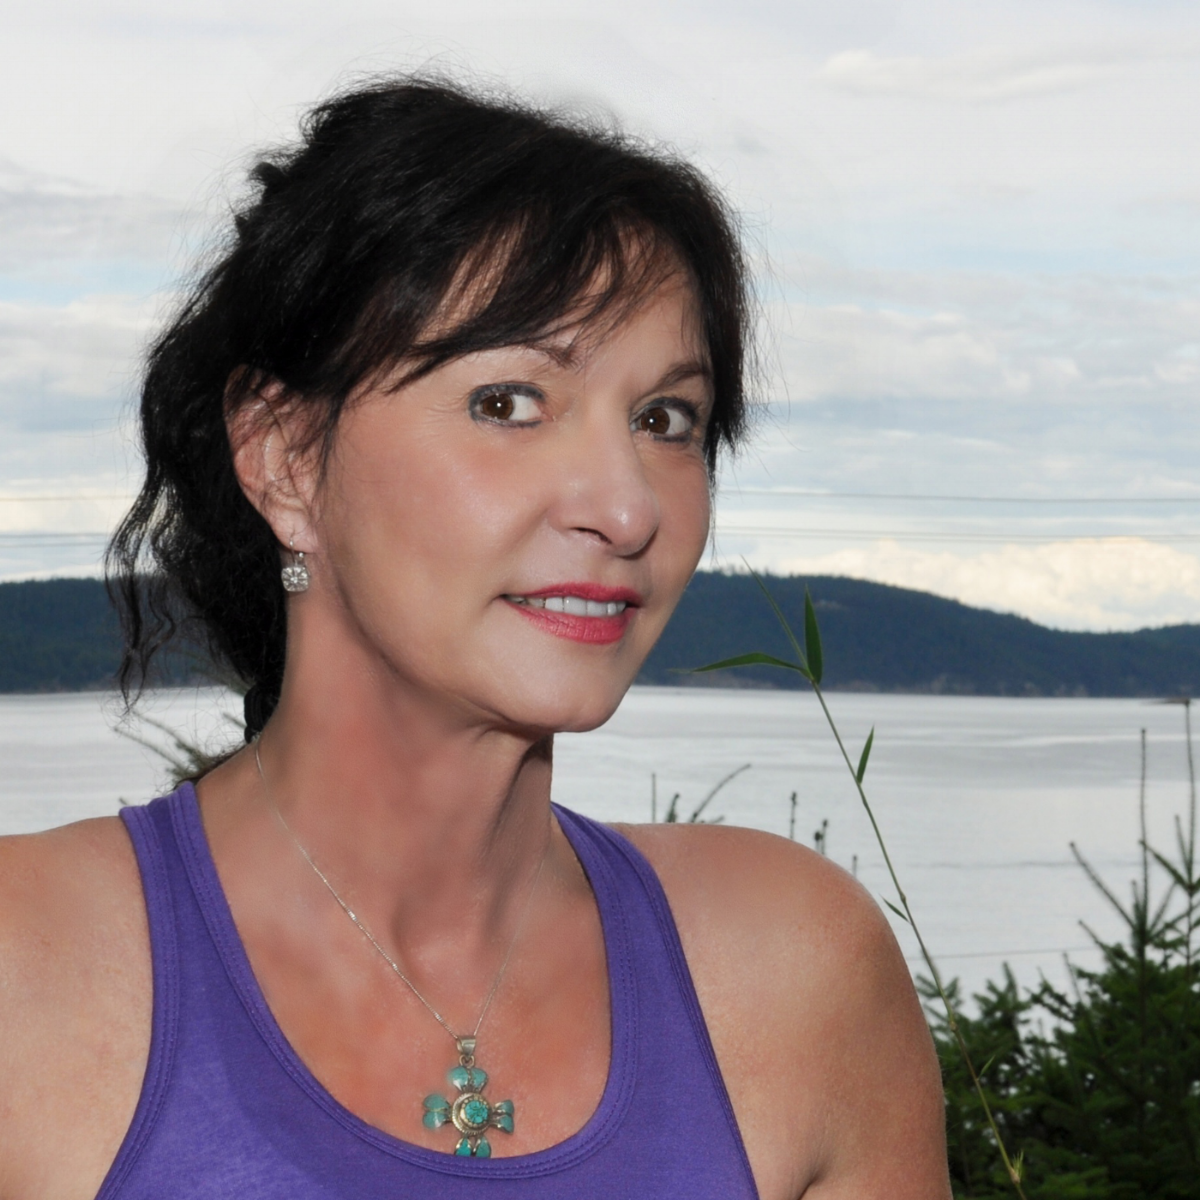 Sylvia is based in theNorthwest for the spring and summer months and is available for sessions in Portland, OR, Bellingham, WA and Salt Spring Island ,BC, Canada.